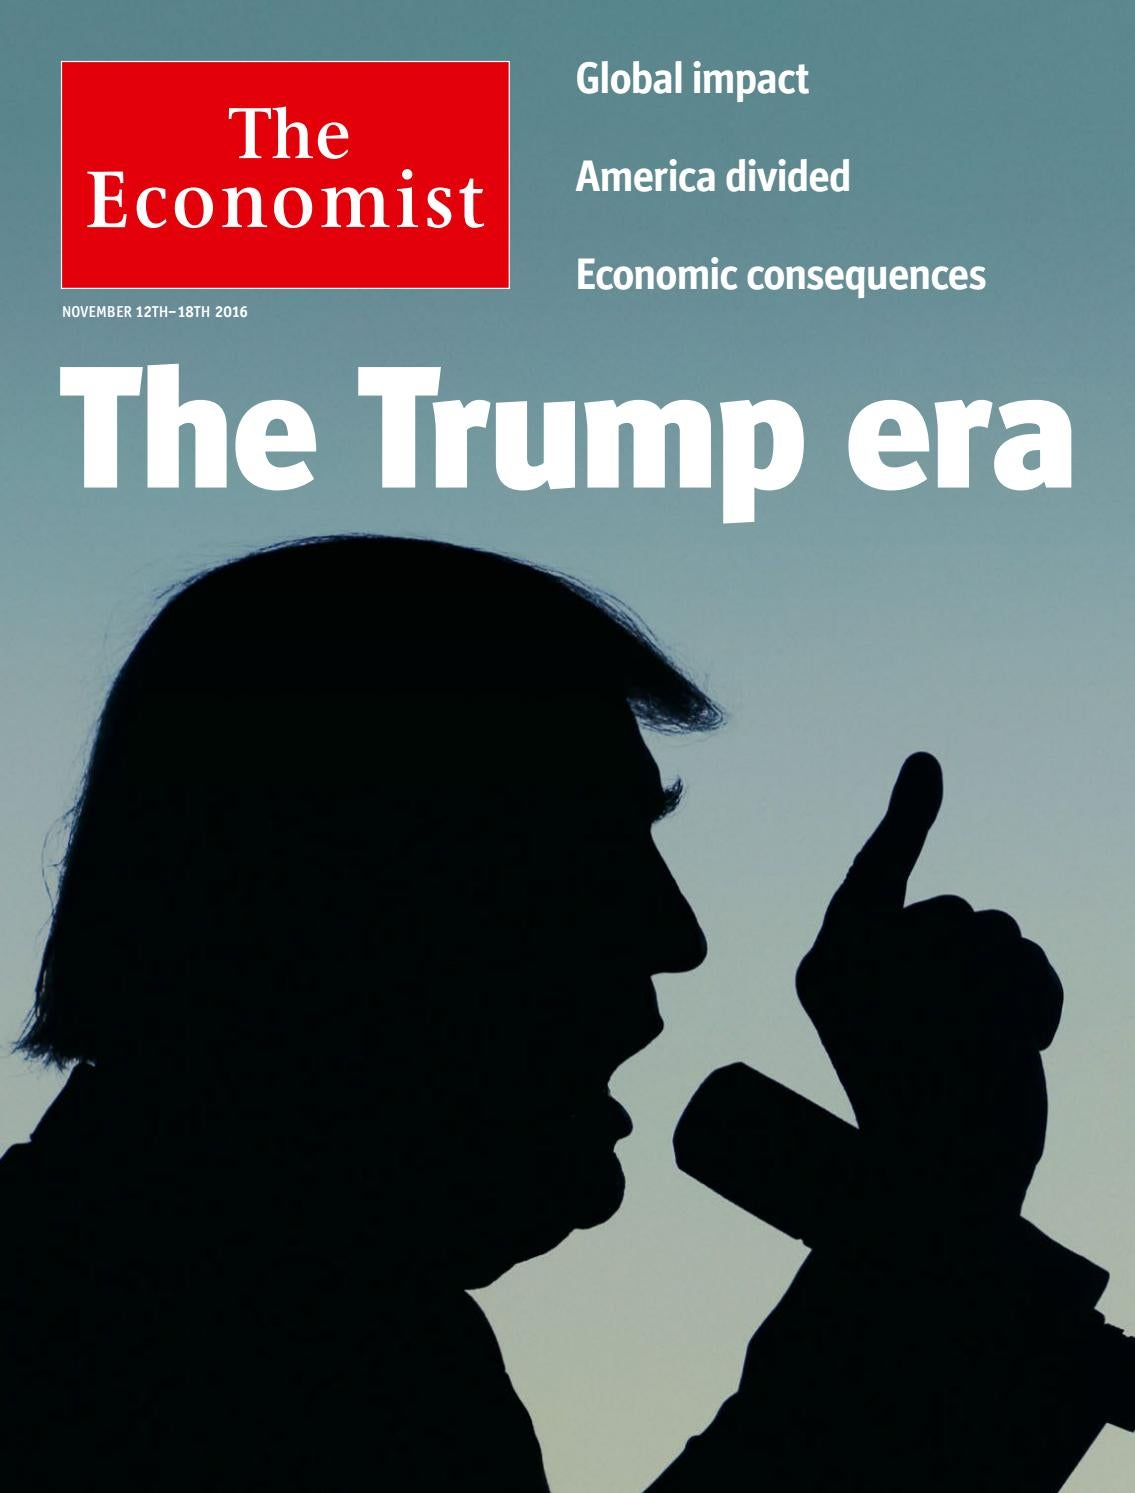 The economist europe november 12 2016 by Javier Jambay - issuu